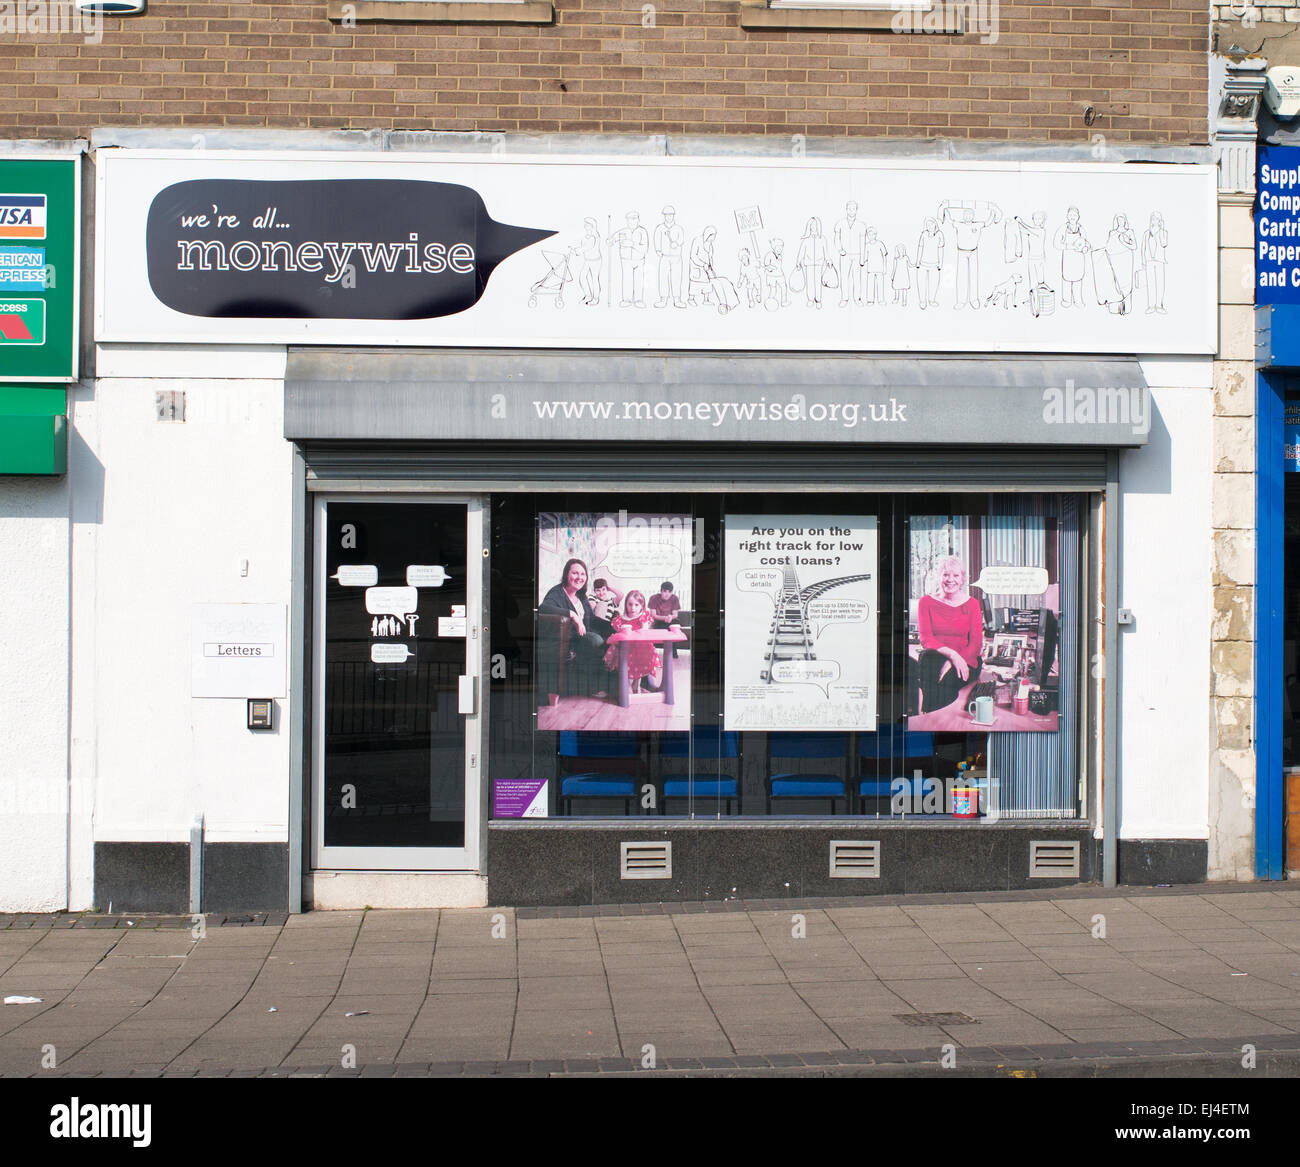 Moneywise credit union offices Byker, north east England, UK - Stock Image